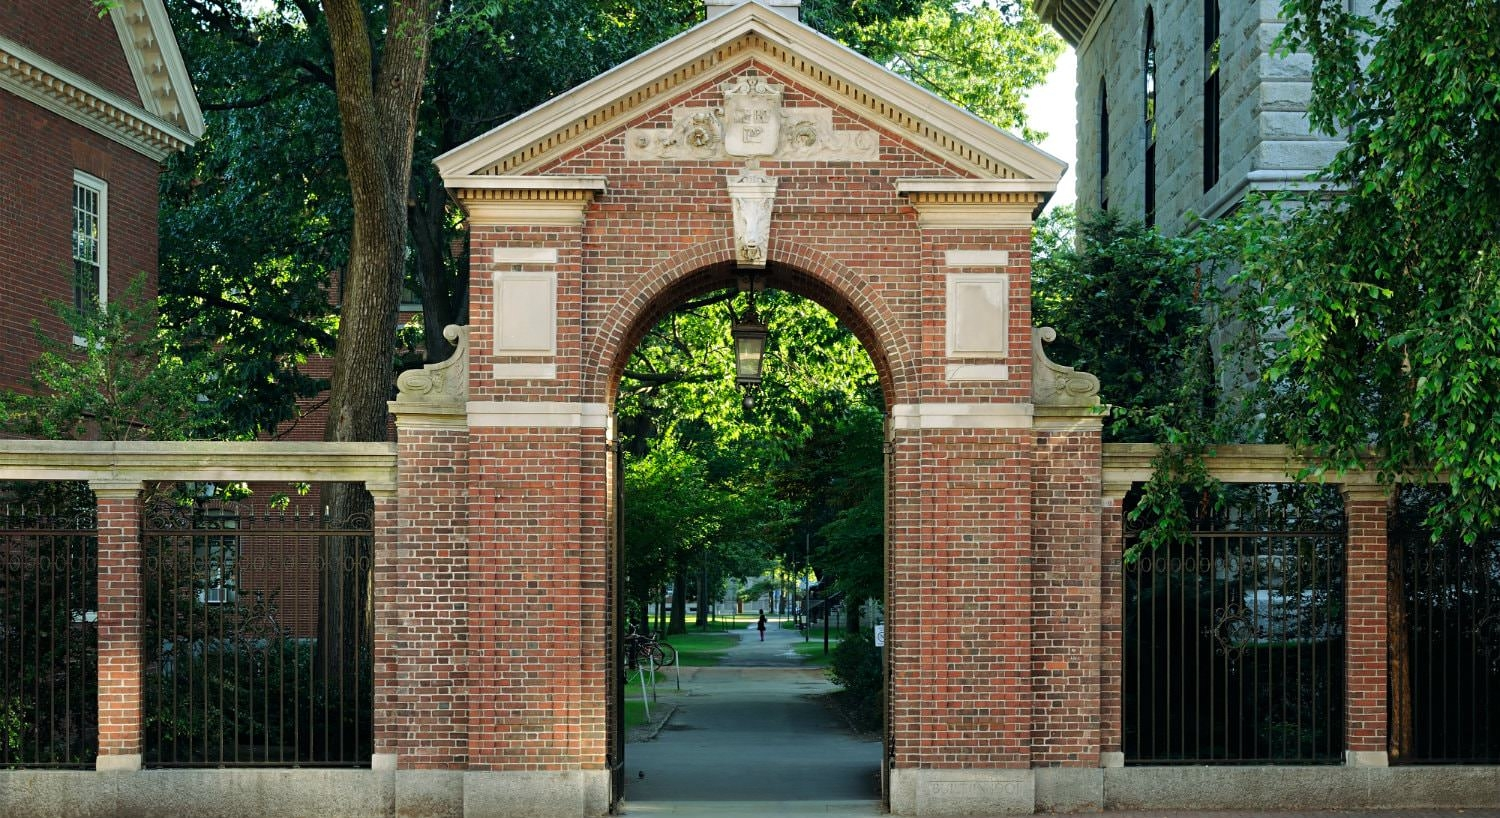 Red and beige brick arched gated entry to a lush green campus